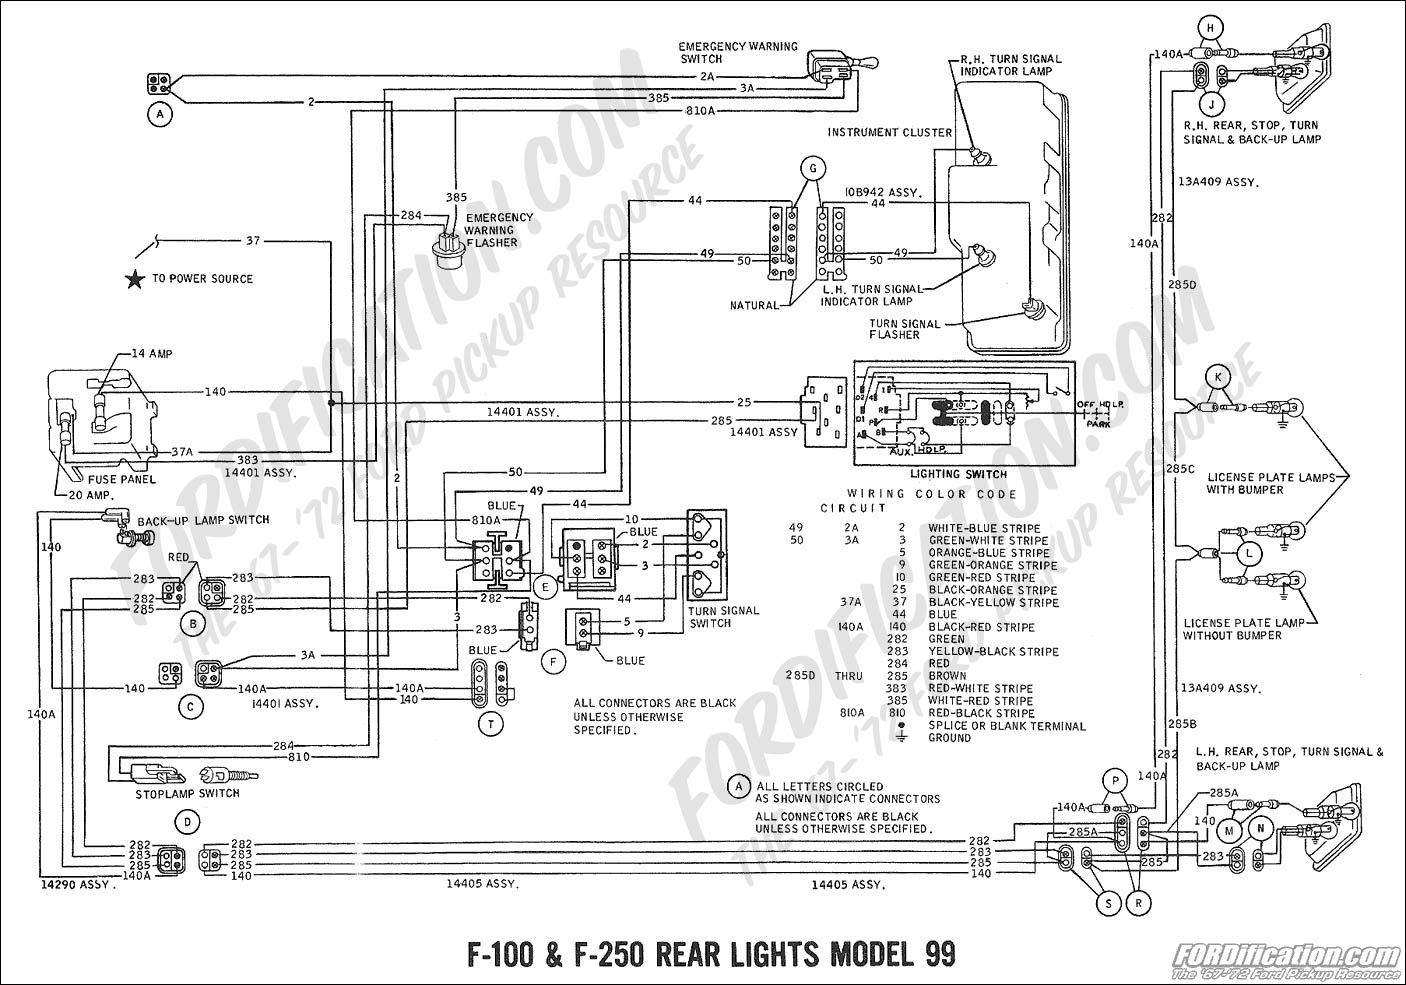 Snap Wiring Harness Plete Chopper Kit Frame Bsa Diagrams Diagram